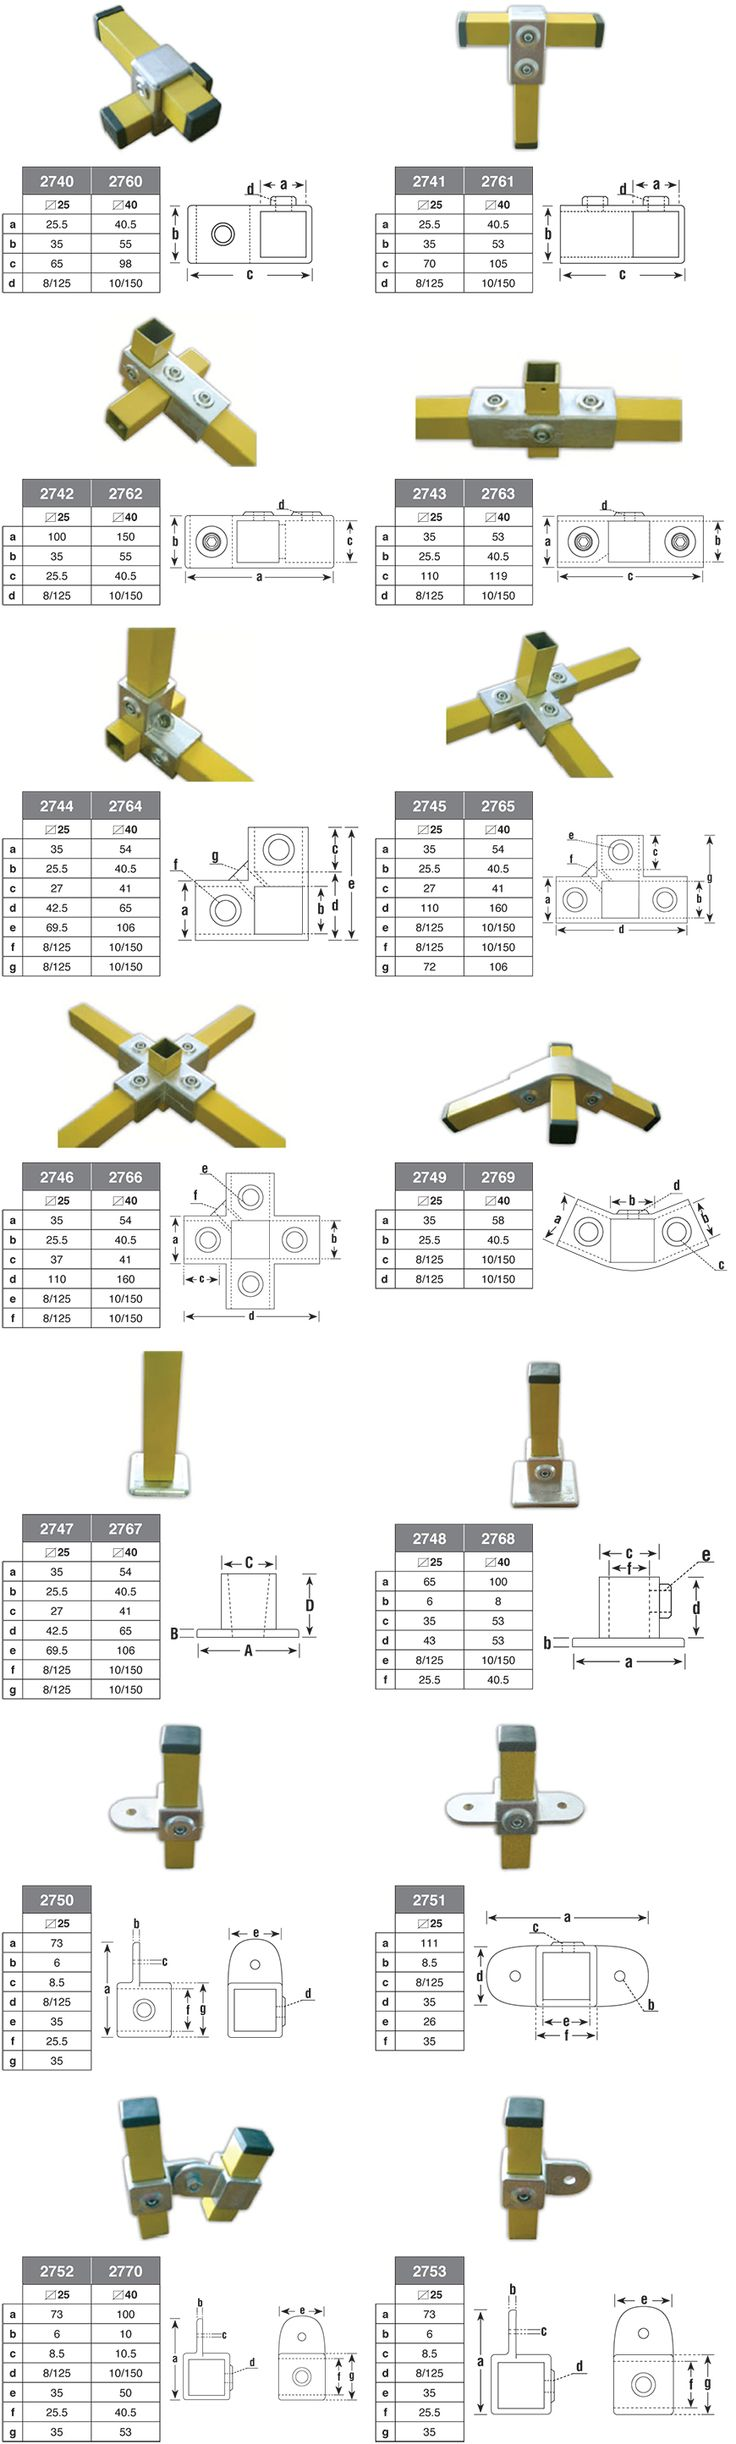 Square Tube Connectors Metal Flexliner Tube Connectors